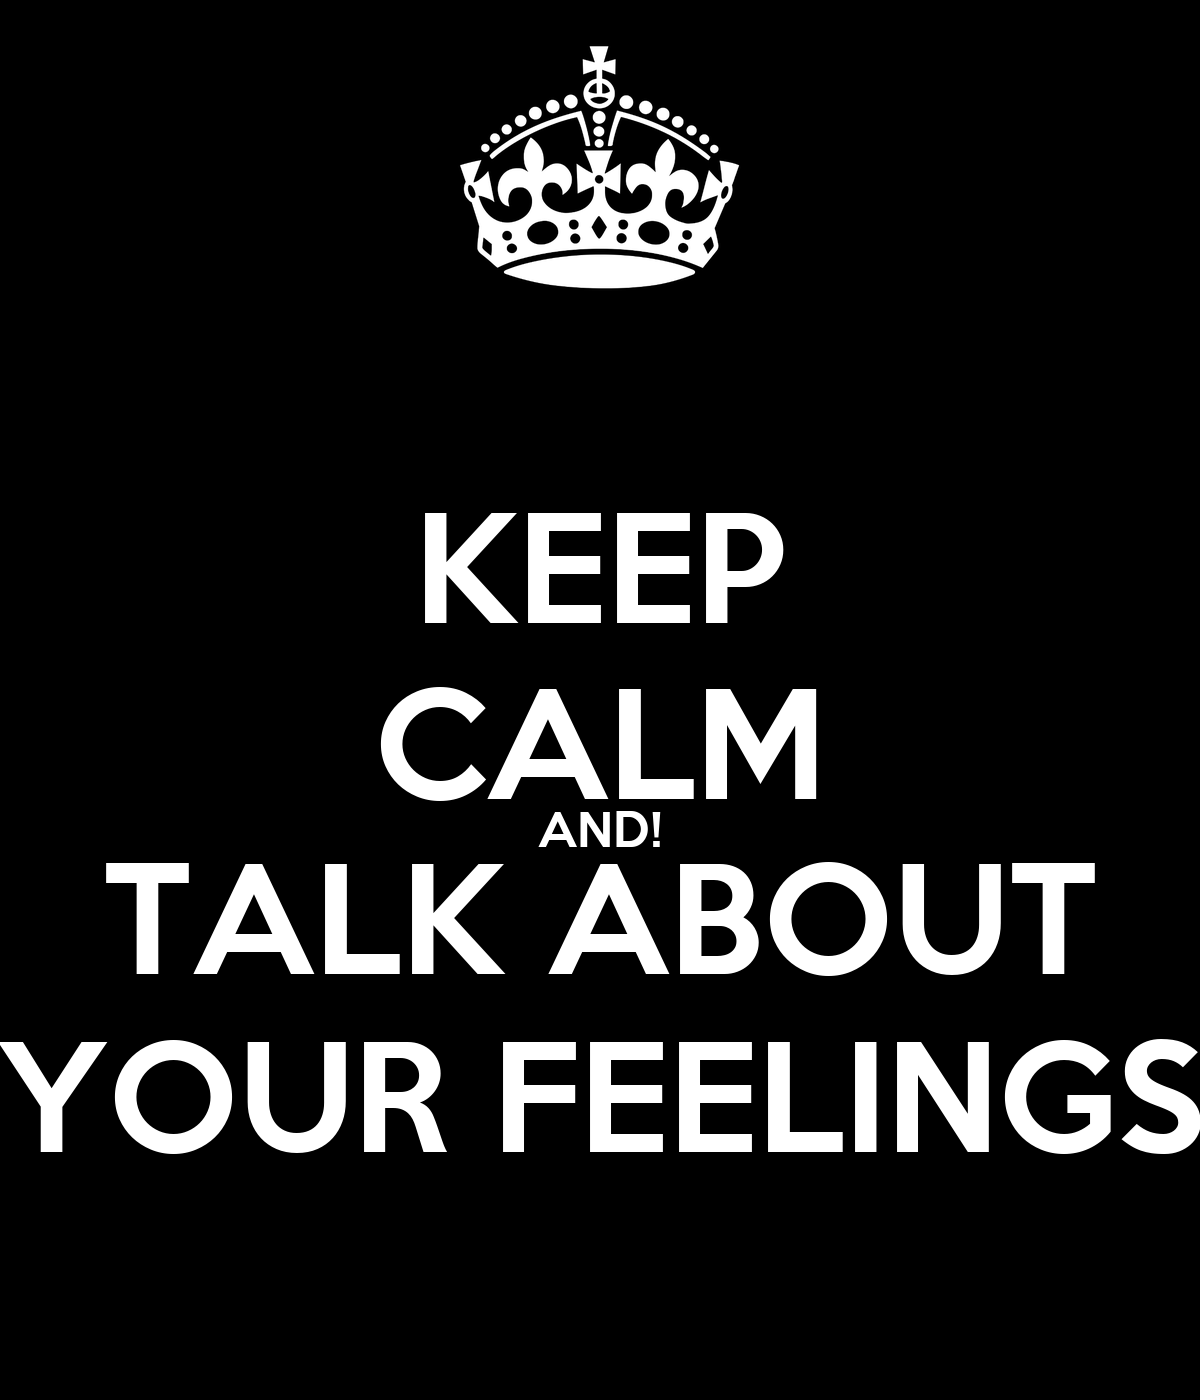 KEEP CALM AND! TALK ABOUT YOUR FEELINGS - KEEP CALM AND